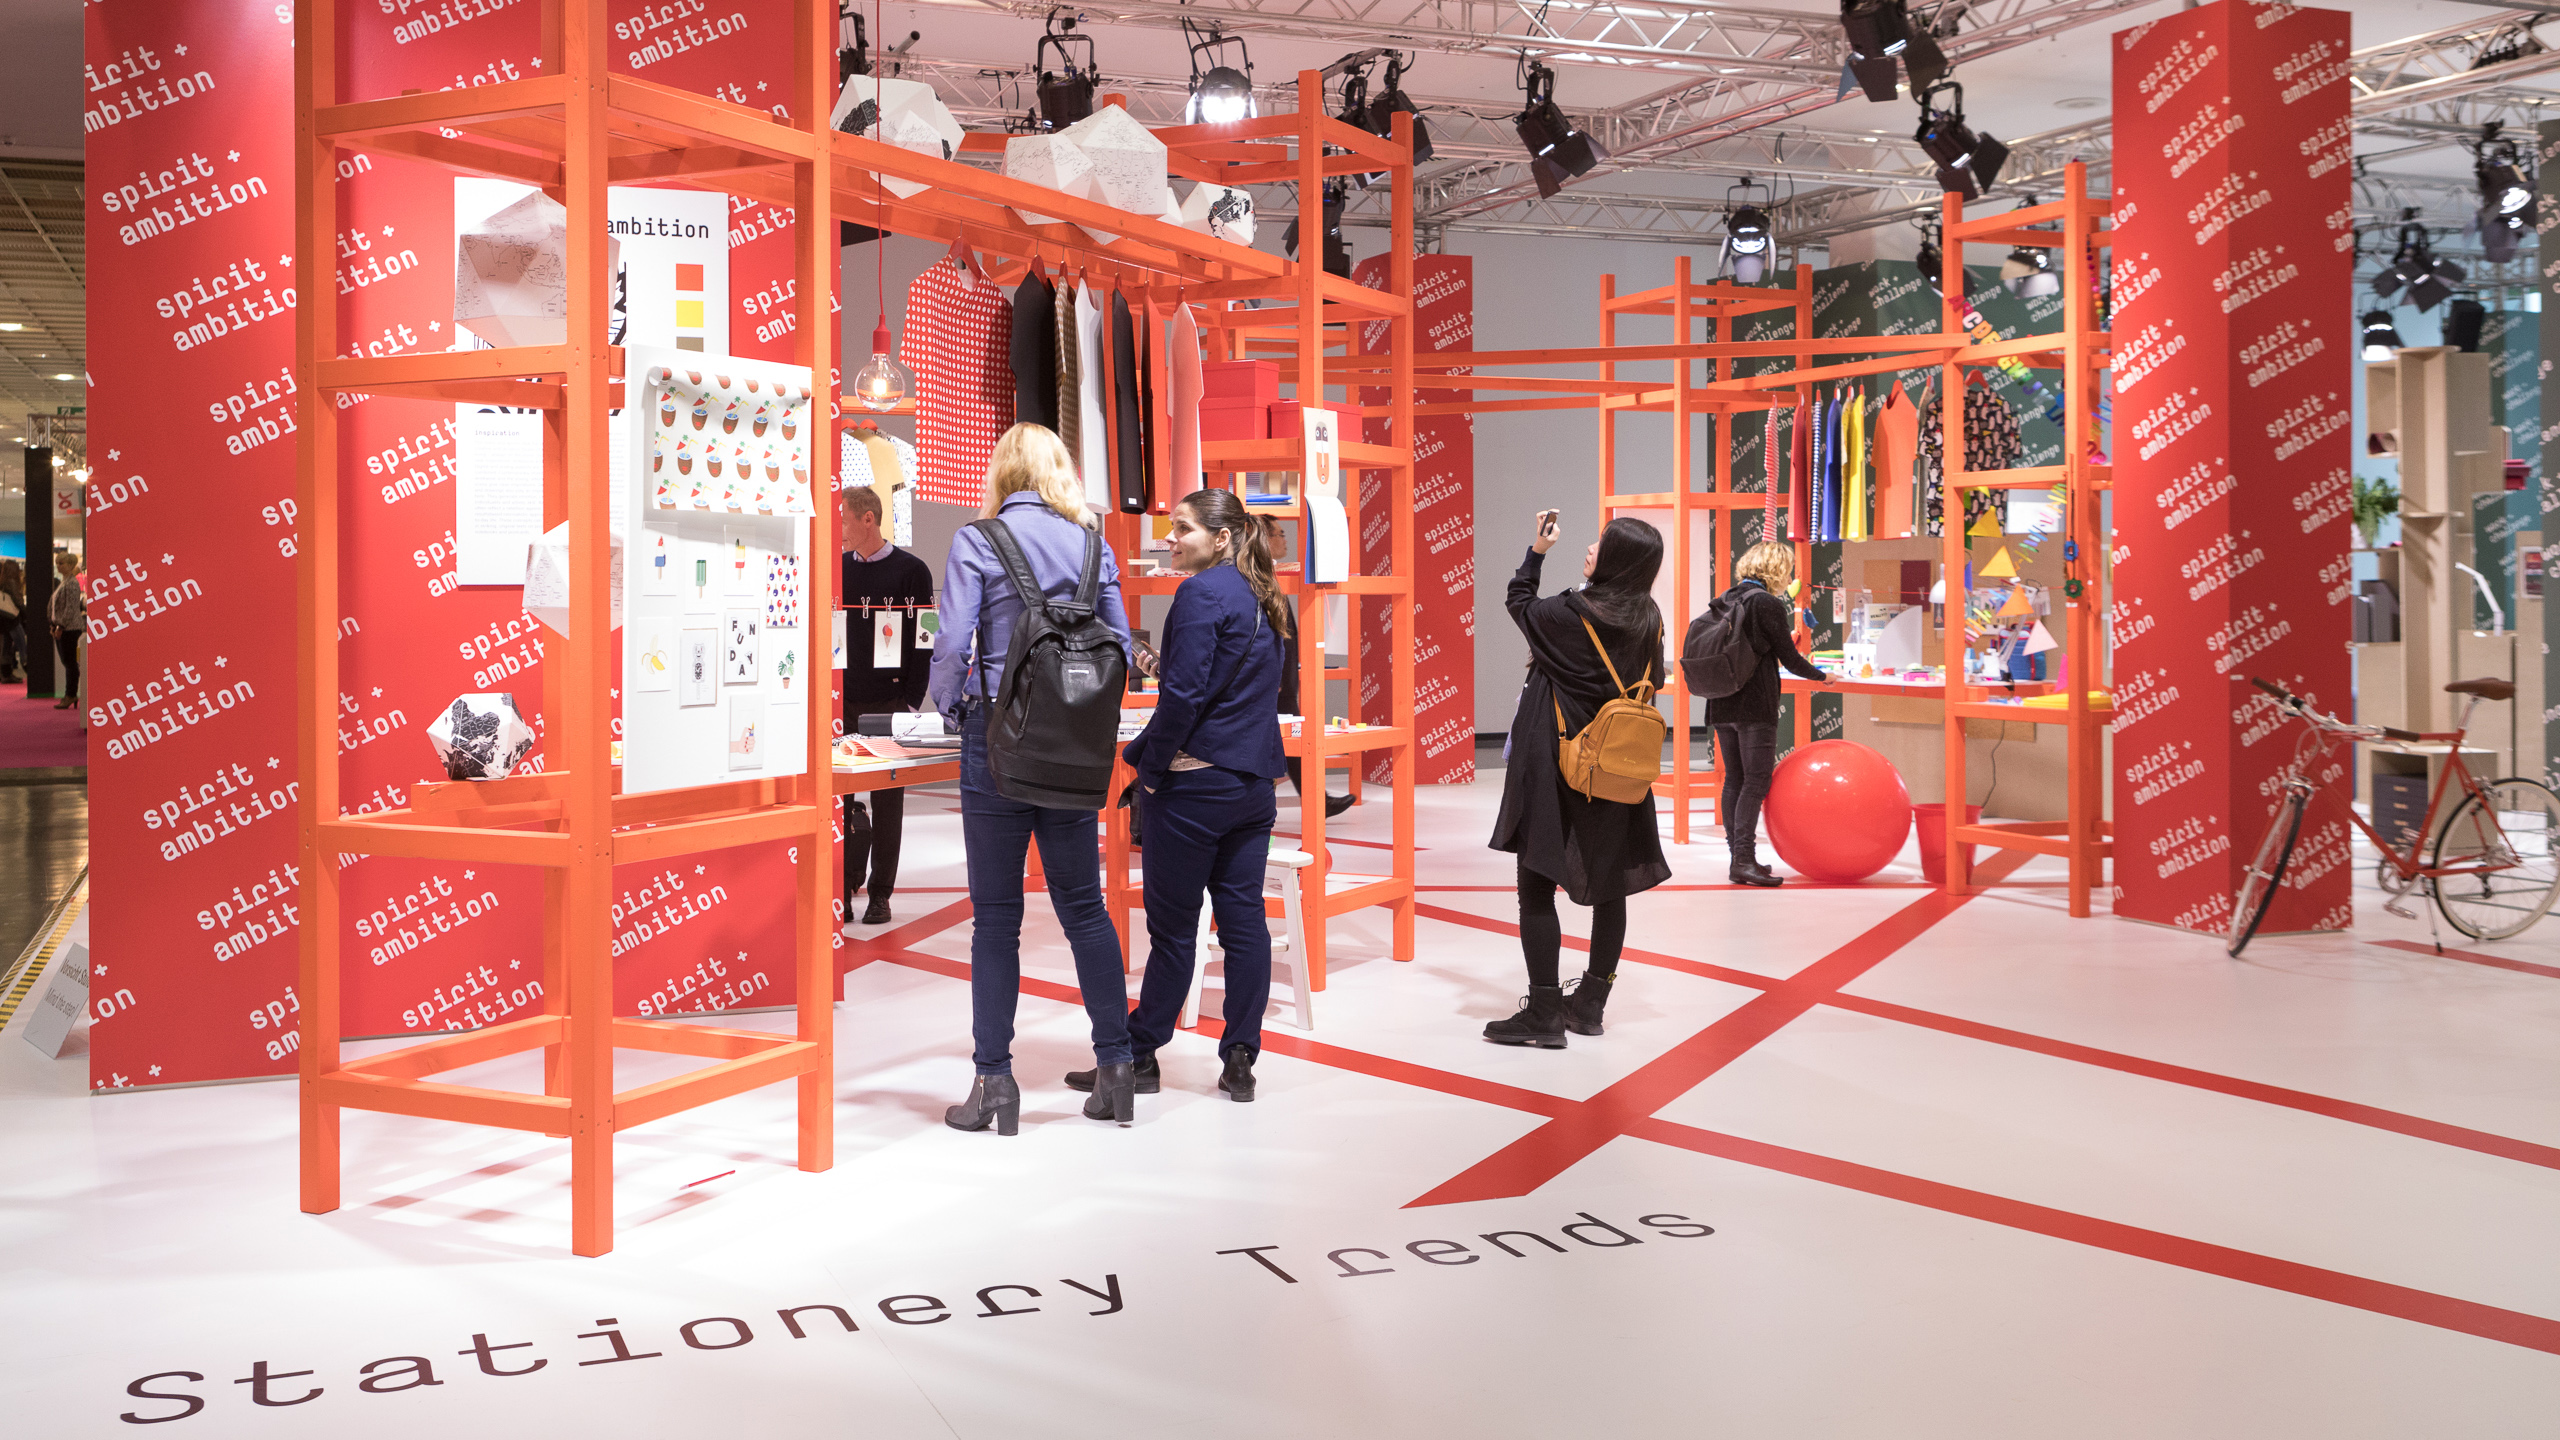 Visitors look at product trends in the stationery area at the Paperworld Trend Show